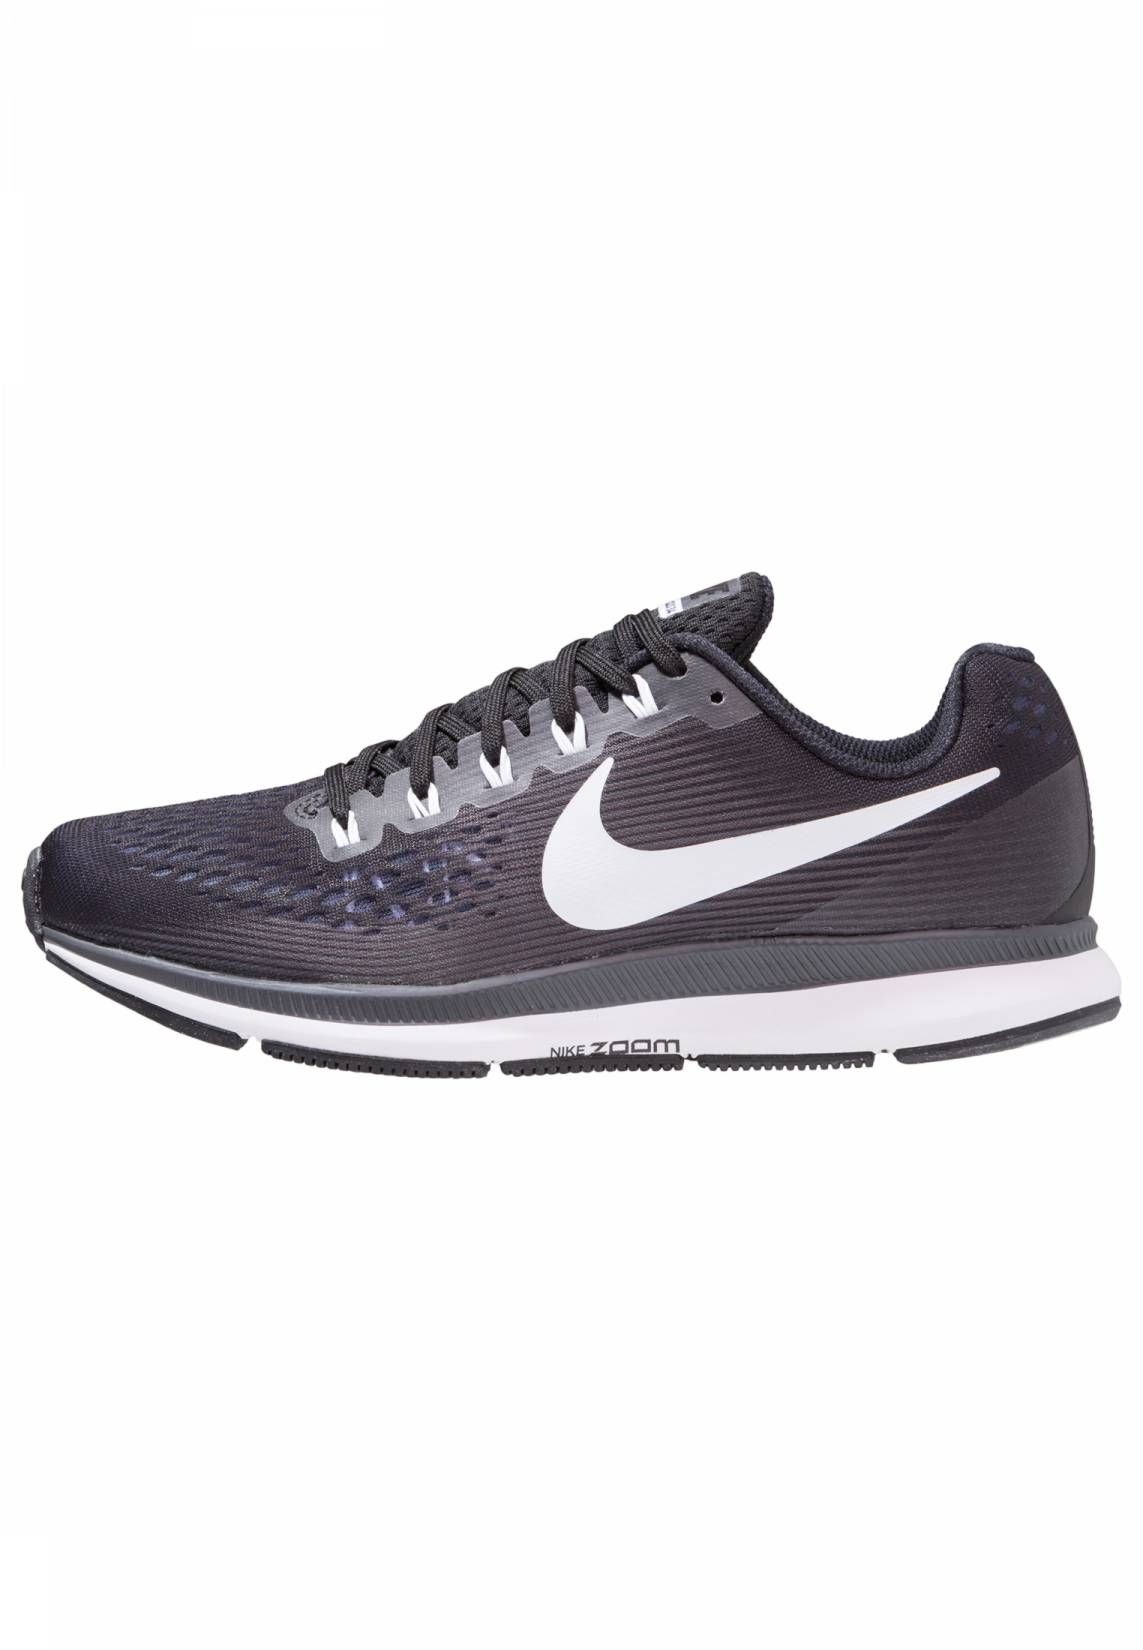 premium selection a3825 a96b7 Nike Performance. AIR ZOOM PEGASUS 34 - Laufschuh Neutral - black white dark